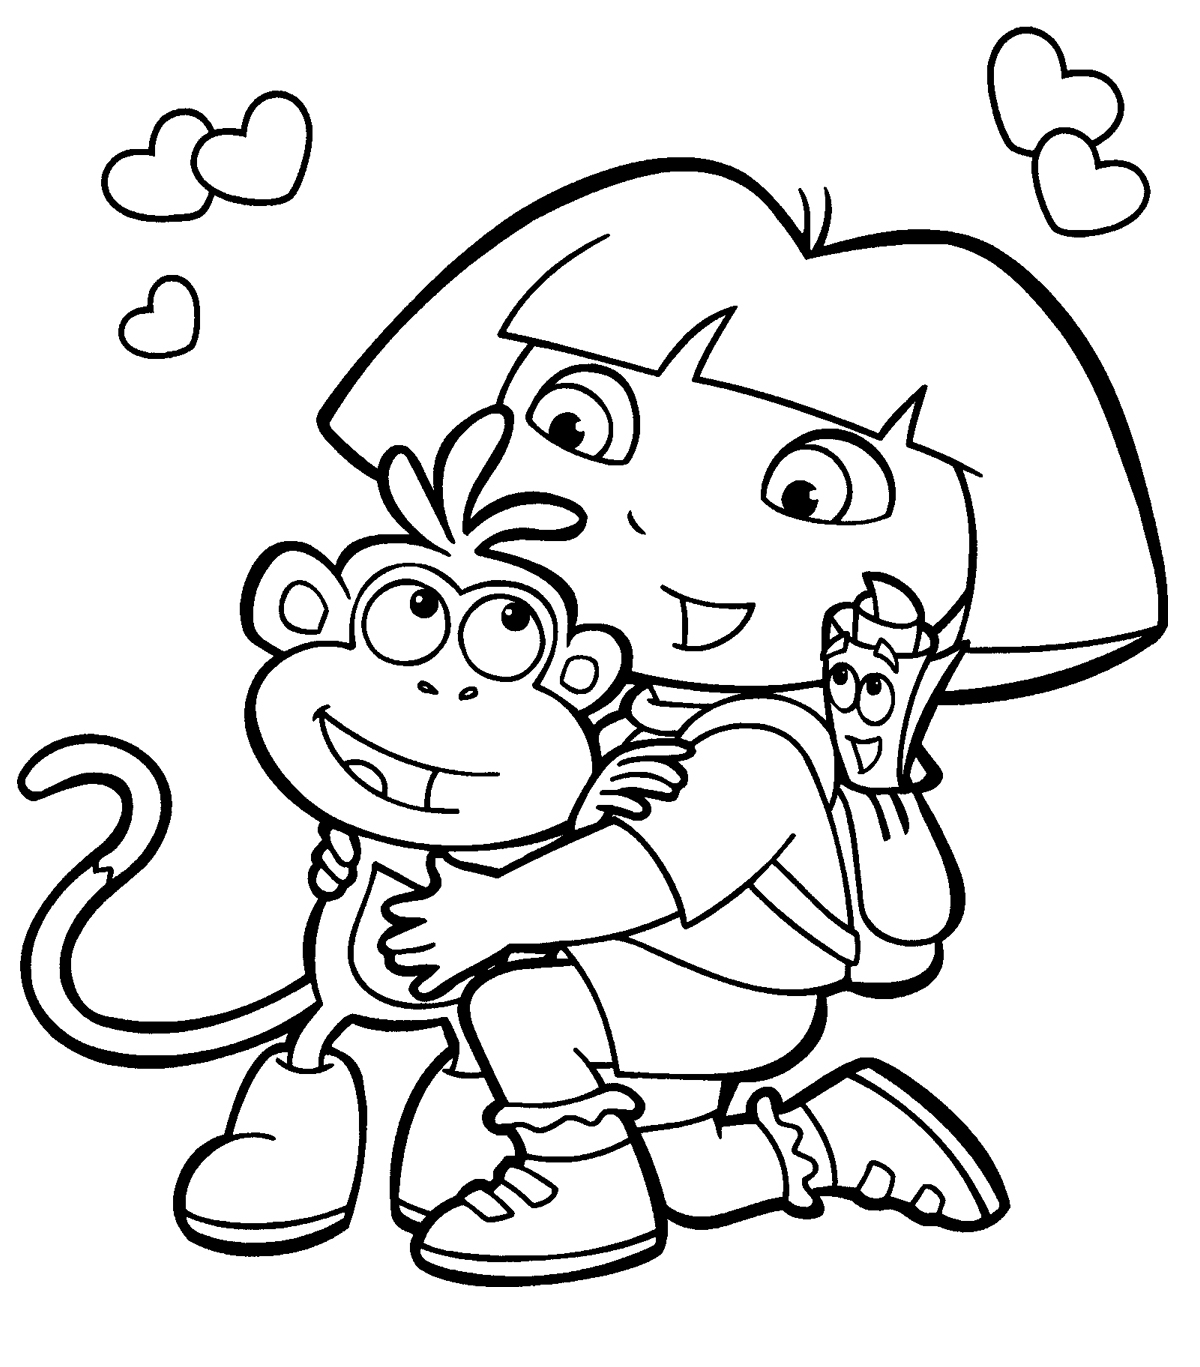 cartoon valentines day coloring pages - photo#48